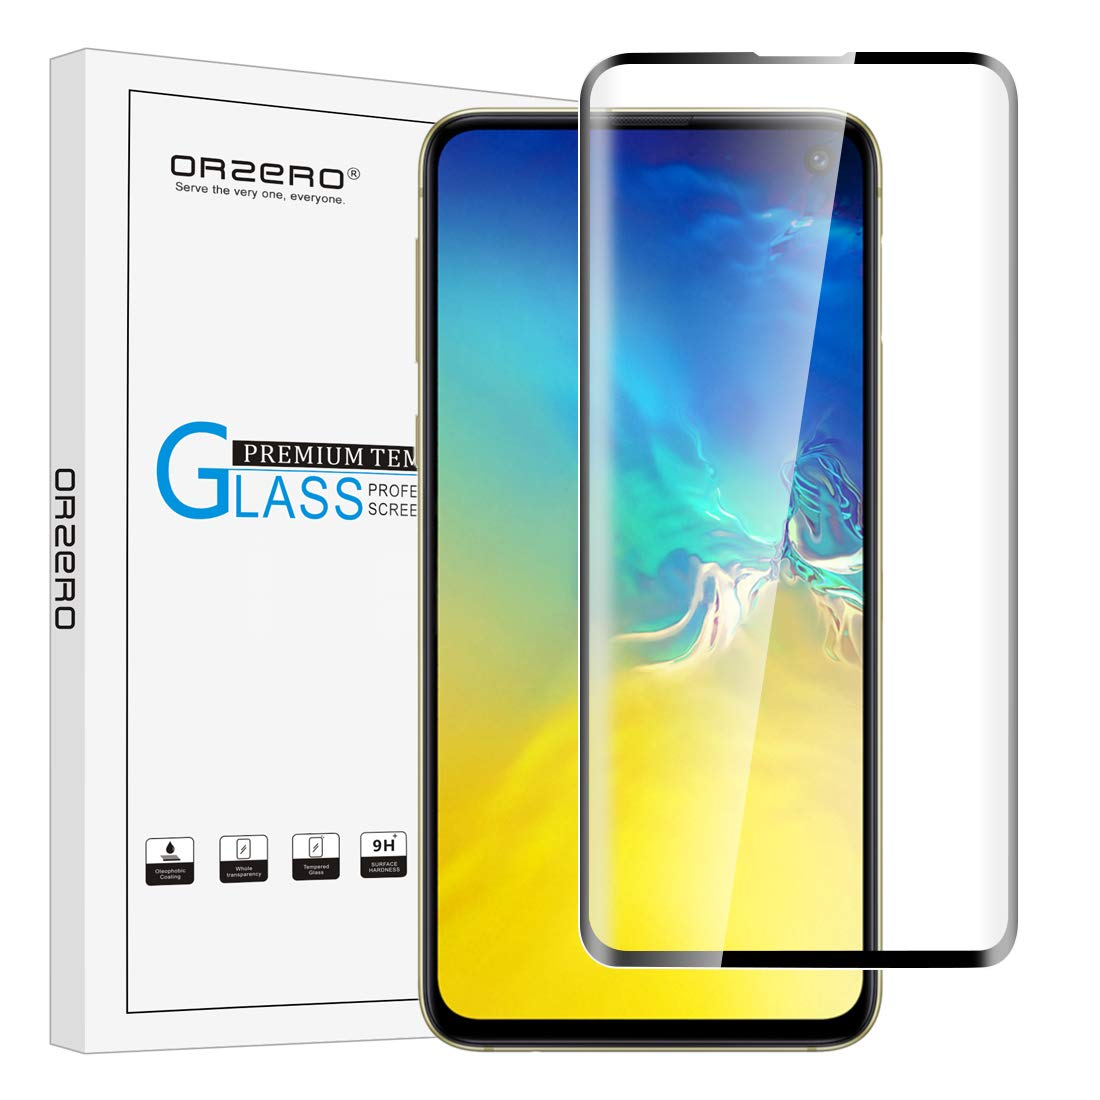 Tempered Glass Screen Protector for Samsung Galaxy S10e by Orzero